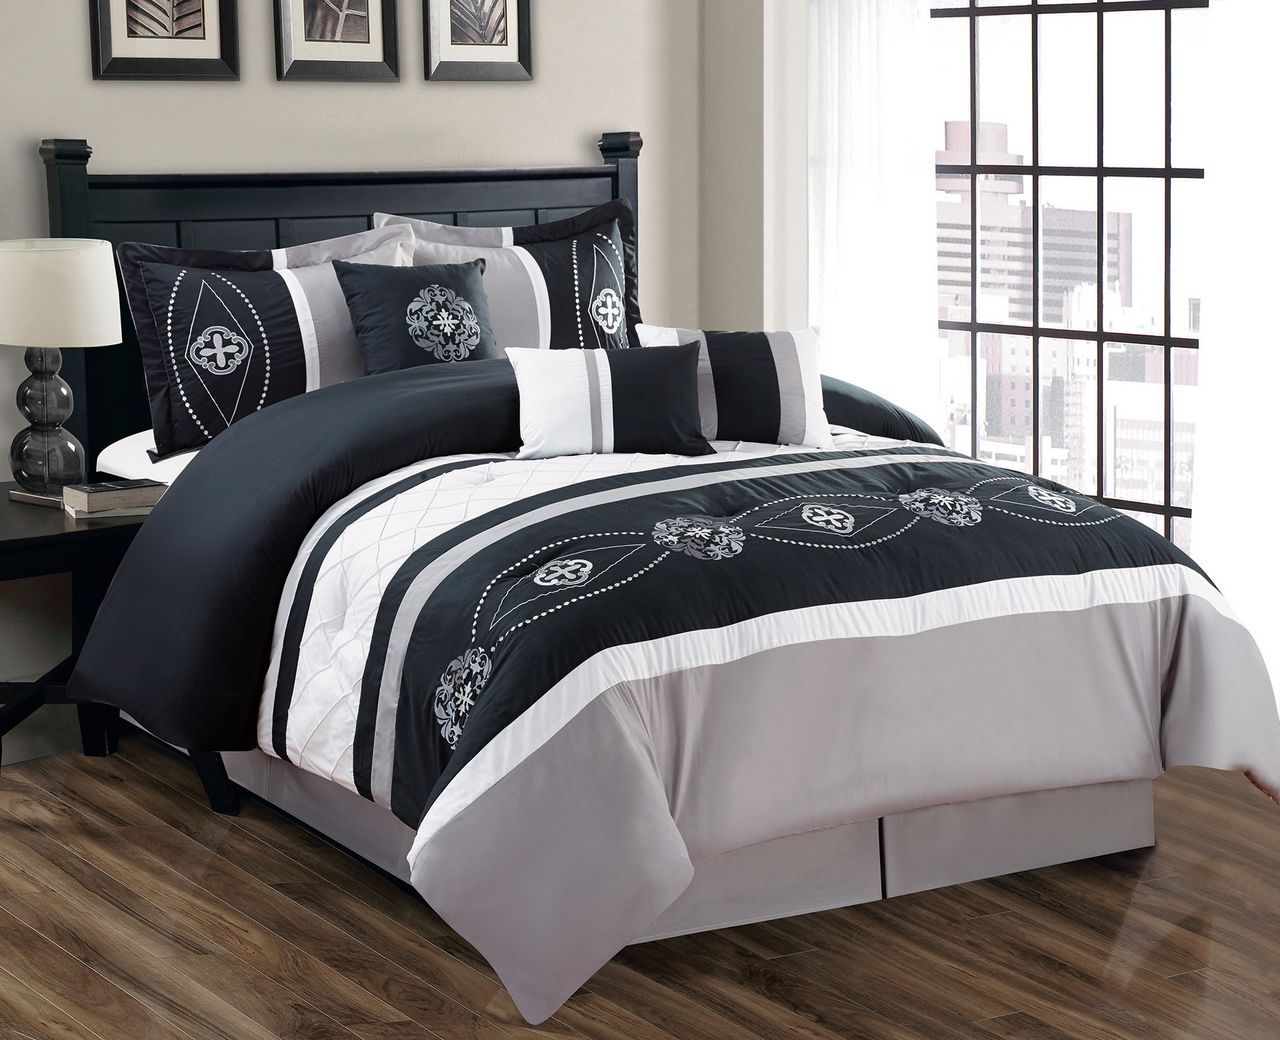 7 Piece Floral Embroidered Black/Gray/White Comforter Set ...